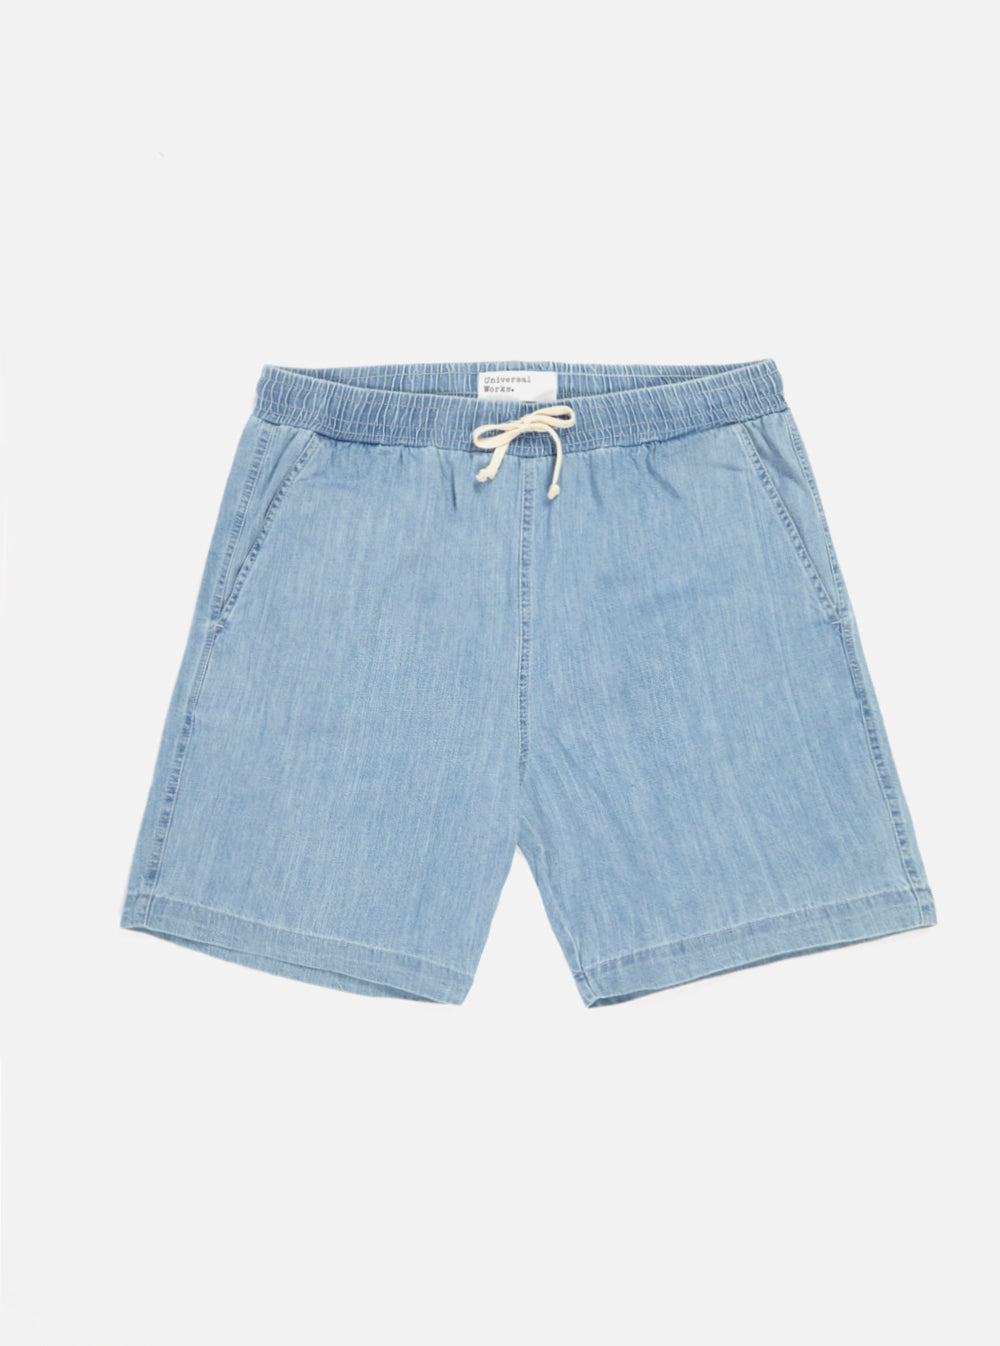 Universal Works Beach Short in Indigo Summer Denim